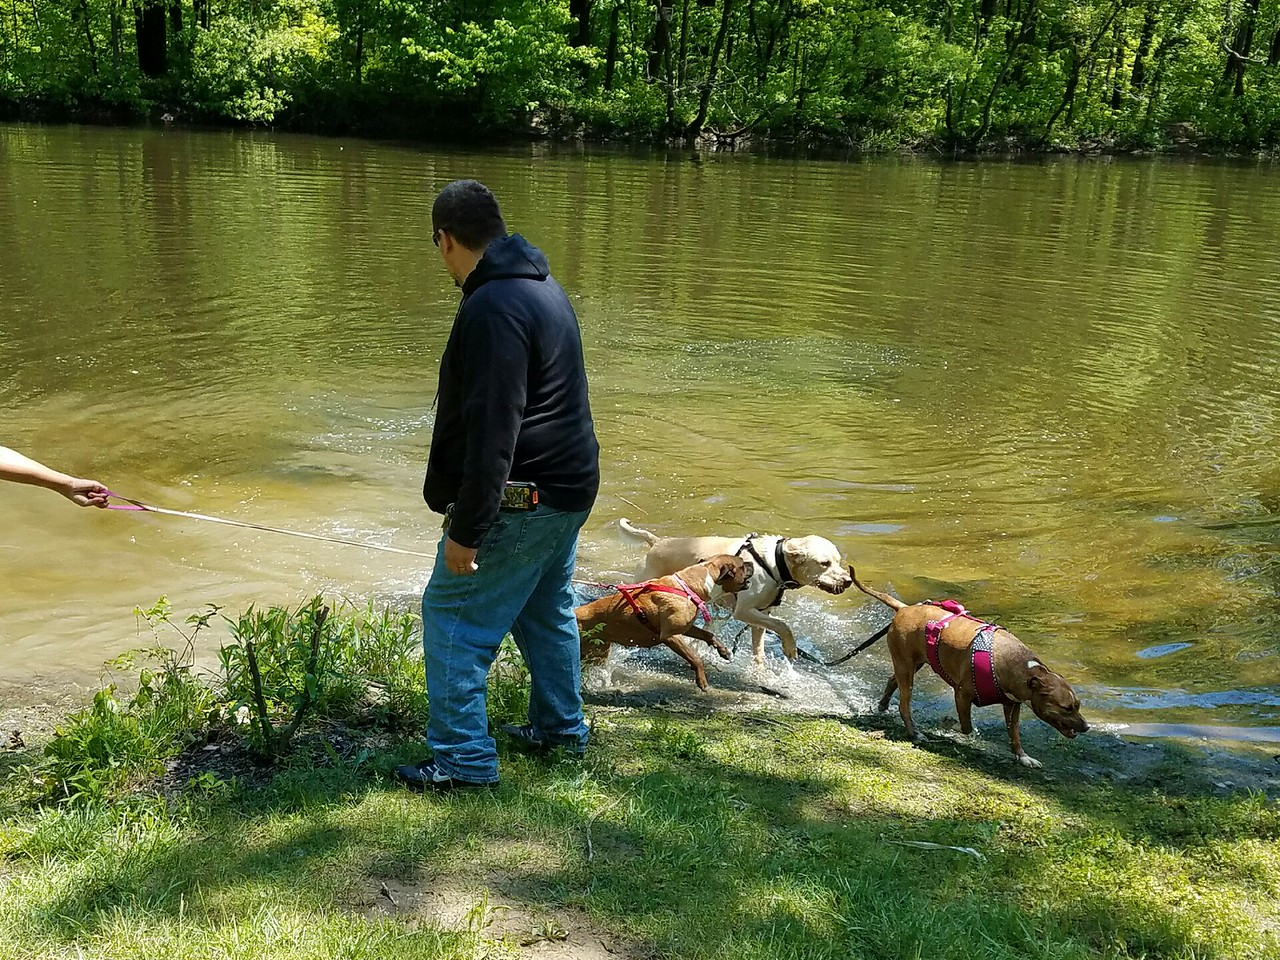 Lucas McCoy: Taking his pups for a hike and playing fetch in the pond.